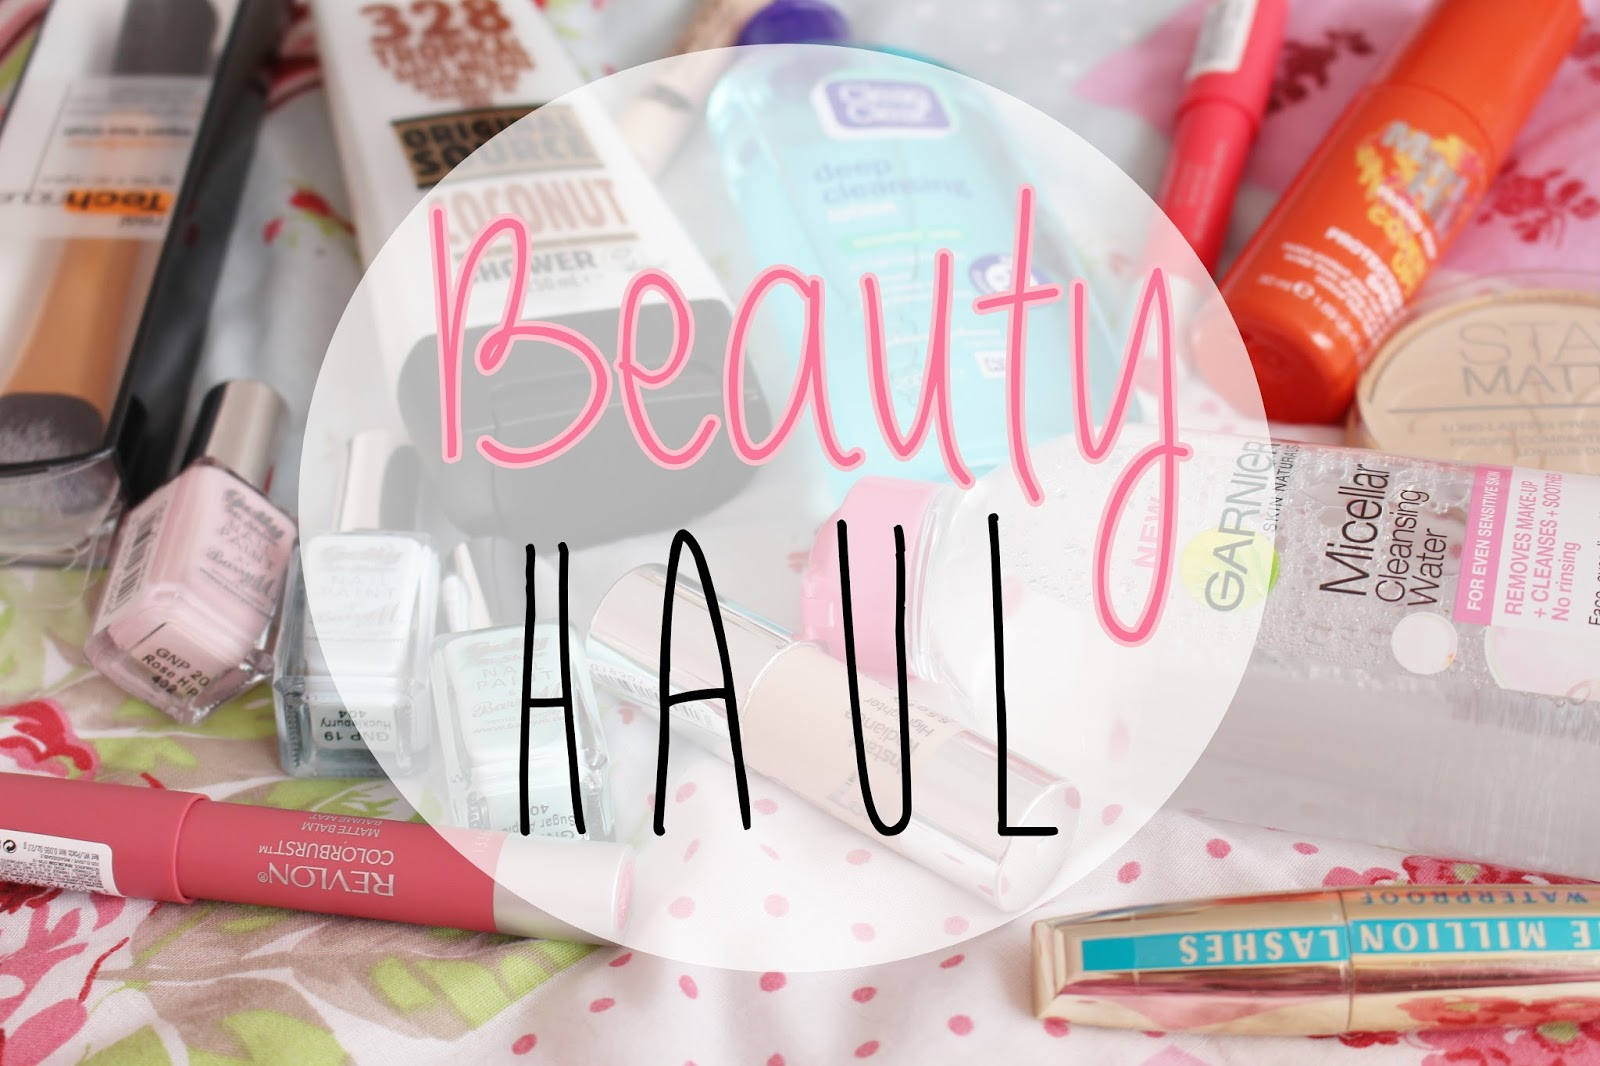 Boots Haul March 2014